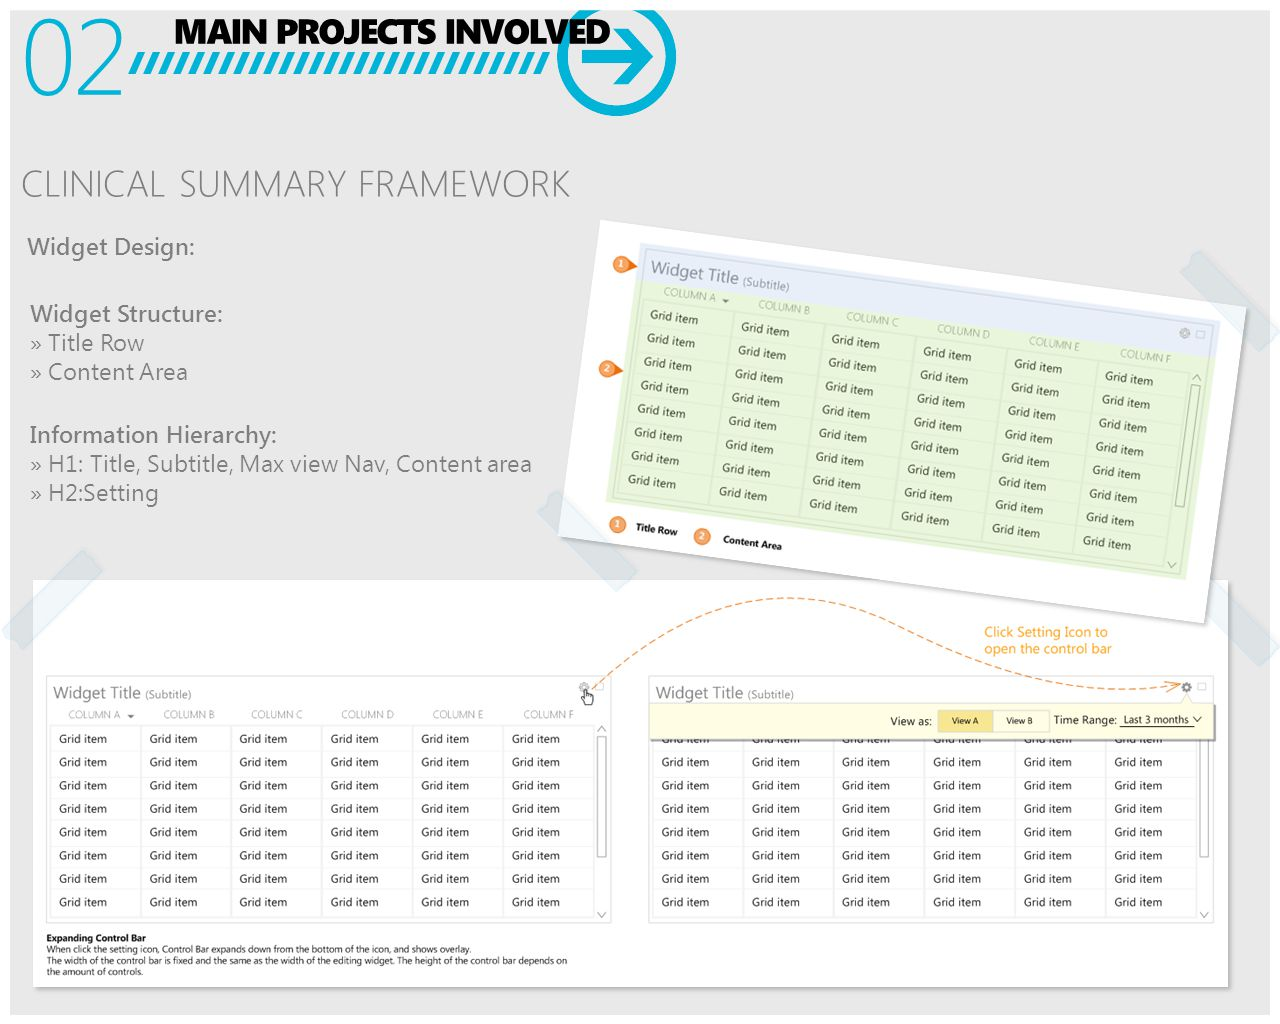 MAIN PROJECTS INVOLVED 02 CLINICAL SUMMARY FRAMEWORK Widget Structure: » Title Row » Content Area Information Hierarchy: » H1: Title, Subtitle, Max view Nav, Content area » H2:Setting Widget Design: